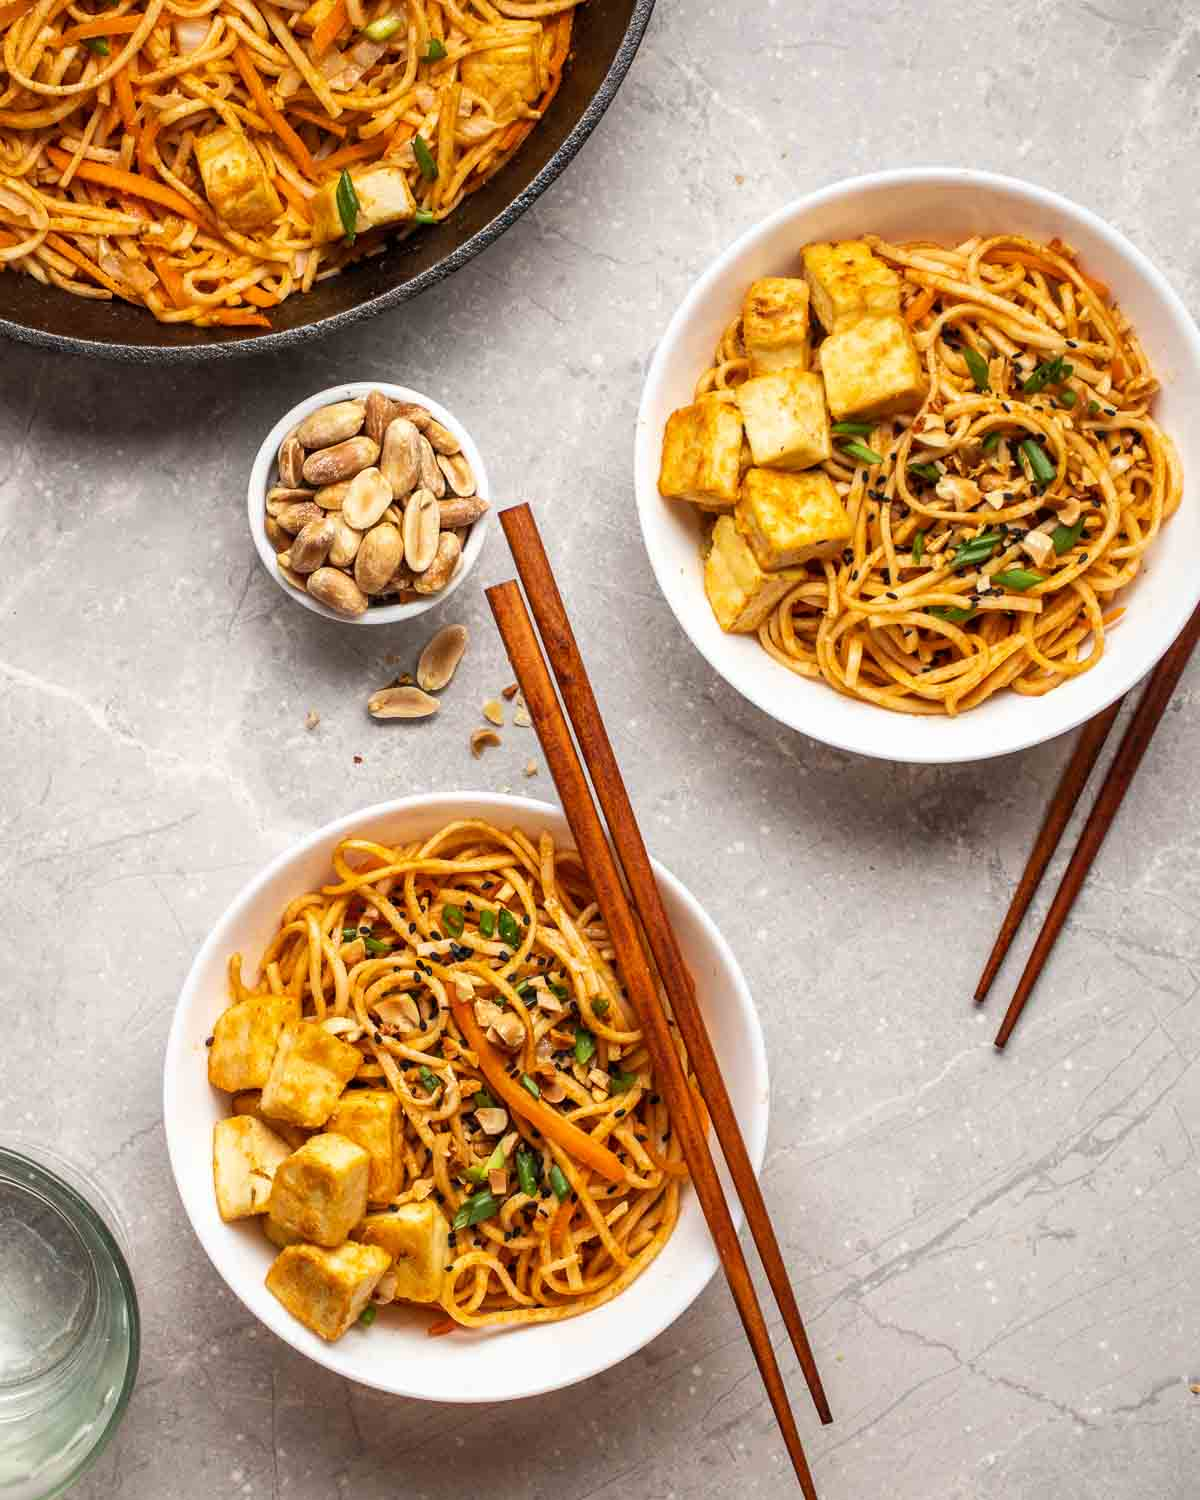 2 bowls of peanut noodles served with chopsticks with dish of peanuts and a pan filled with noodles in the background.